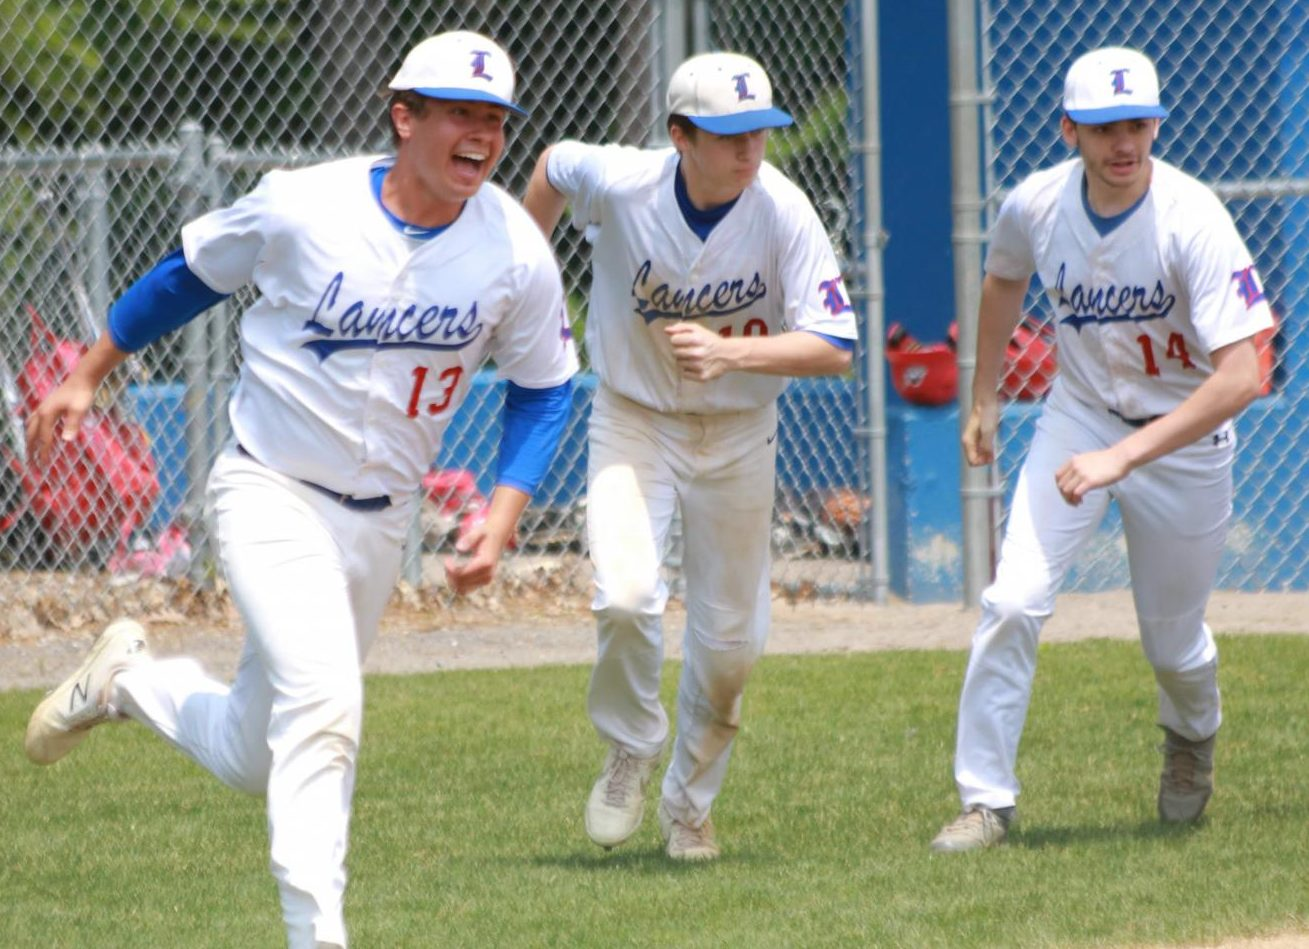 Manor celebrates with his teammates after getting the final out of the 4-1 victory vs. Pinkerton